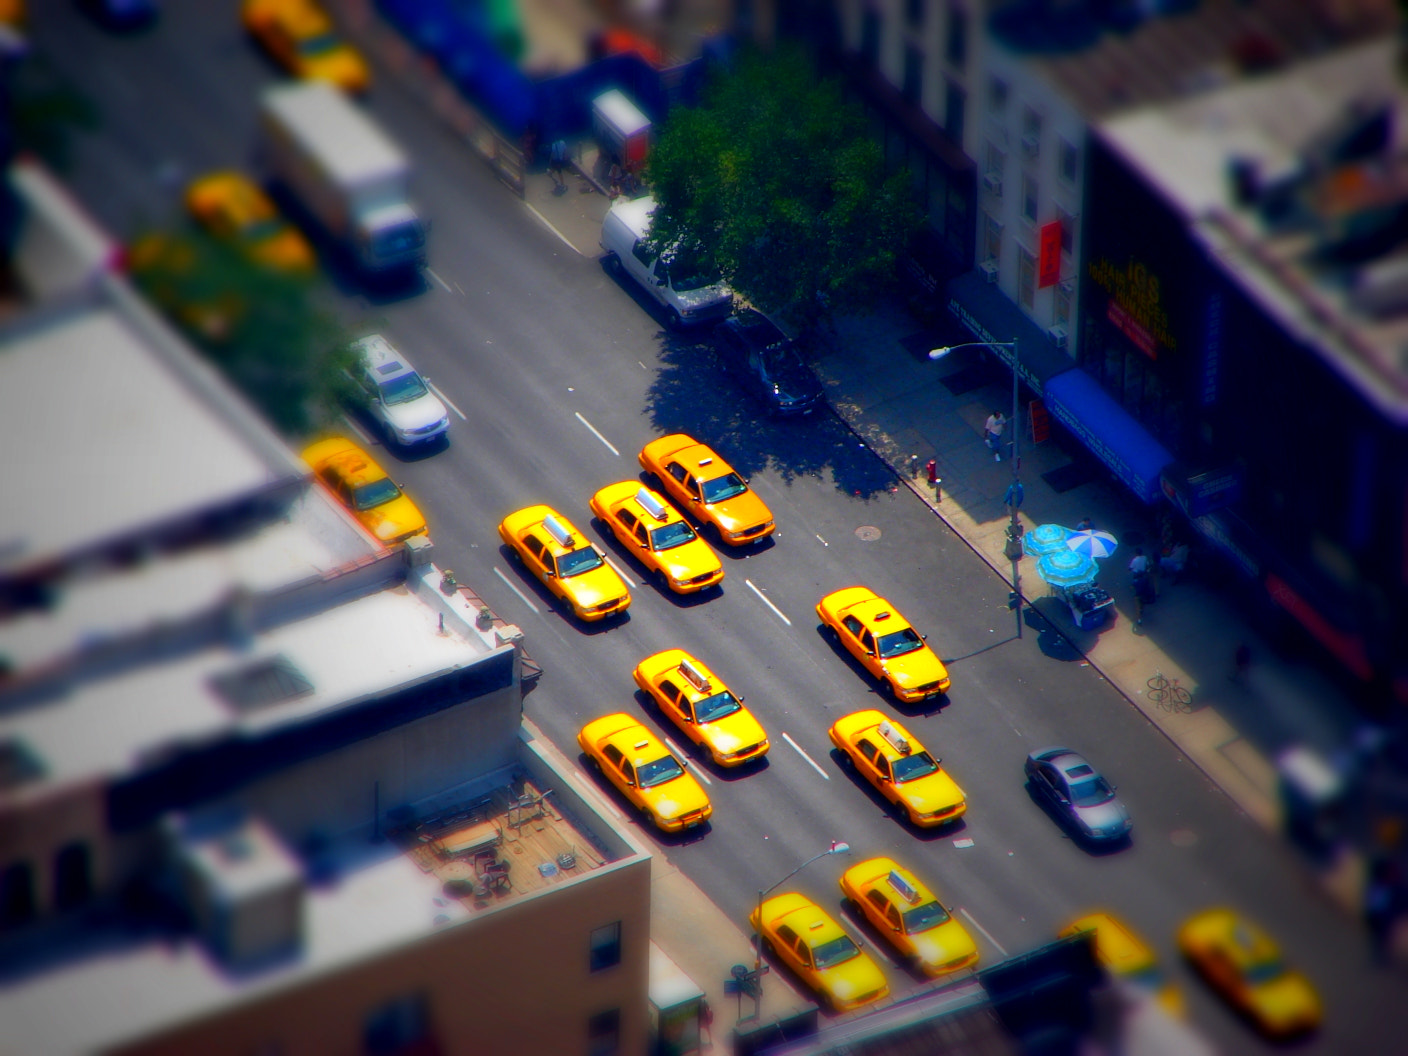 Photograph Tilt shift taxis by Ananthanarayanan Subramanian on 500px